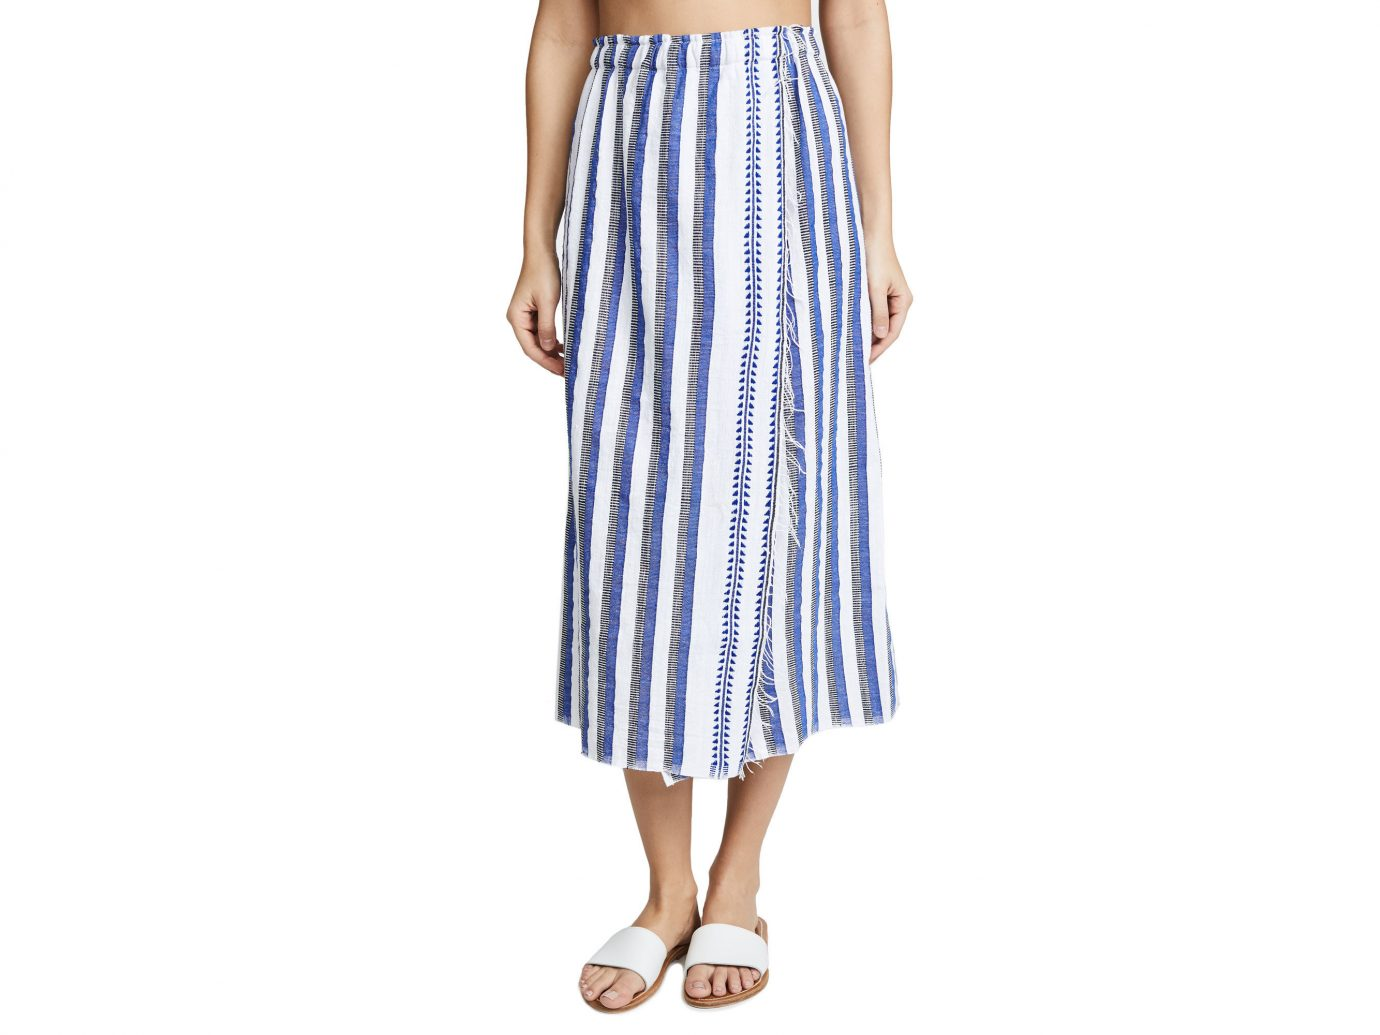 Morocco Packing Tips Style + Design Travel Shop clothing day dress dress shoulder waist trunk pattern electric blue joint skirt